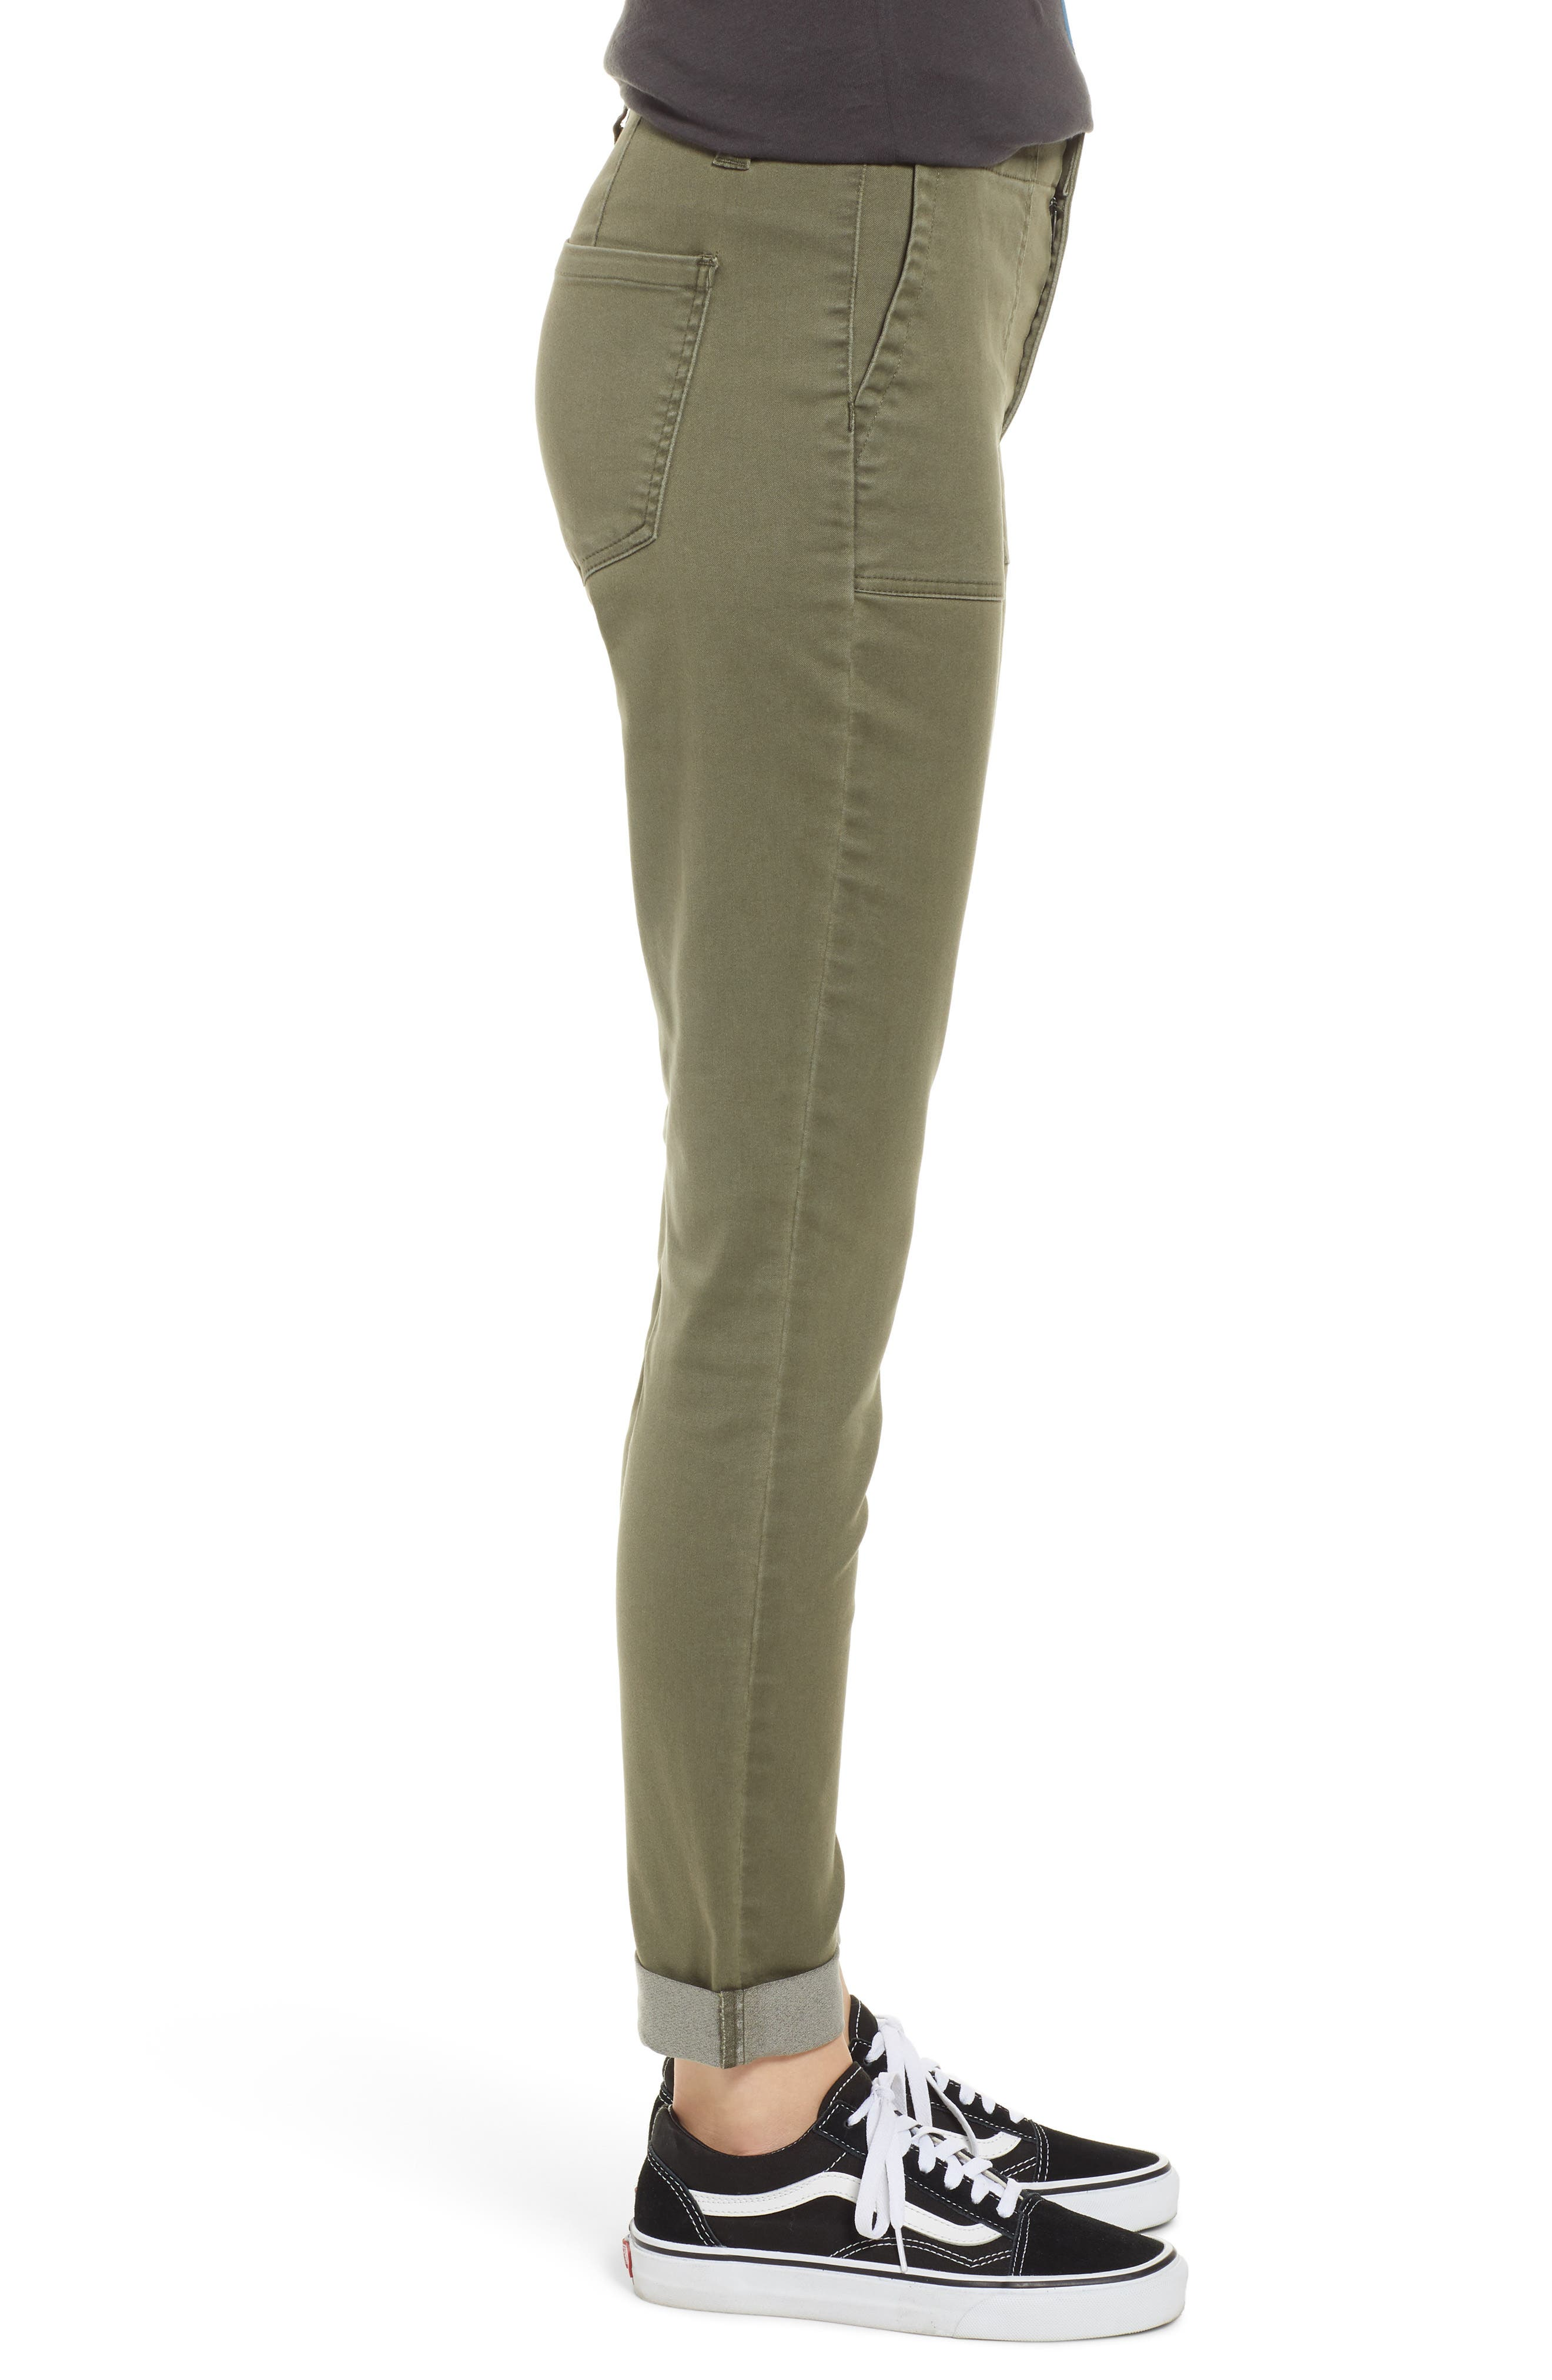 TINSEL, Cuffed Sateen Skinny Pants, Alternate thumbnail 4, color, DUSTY OLIVE